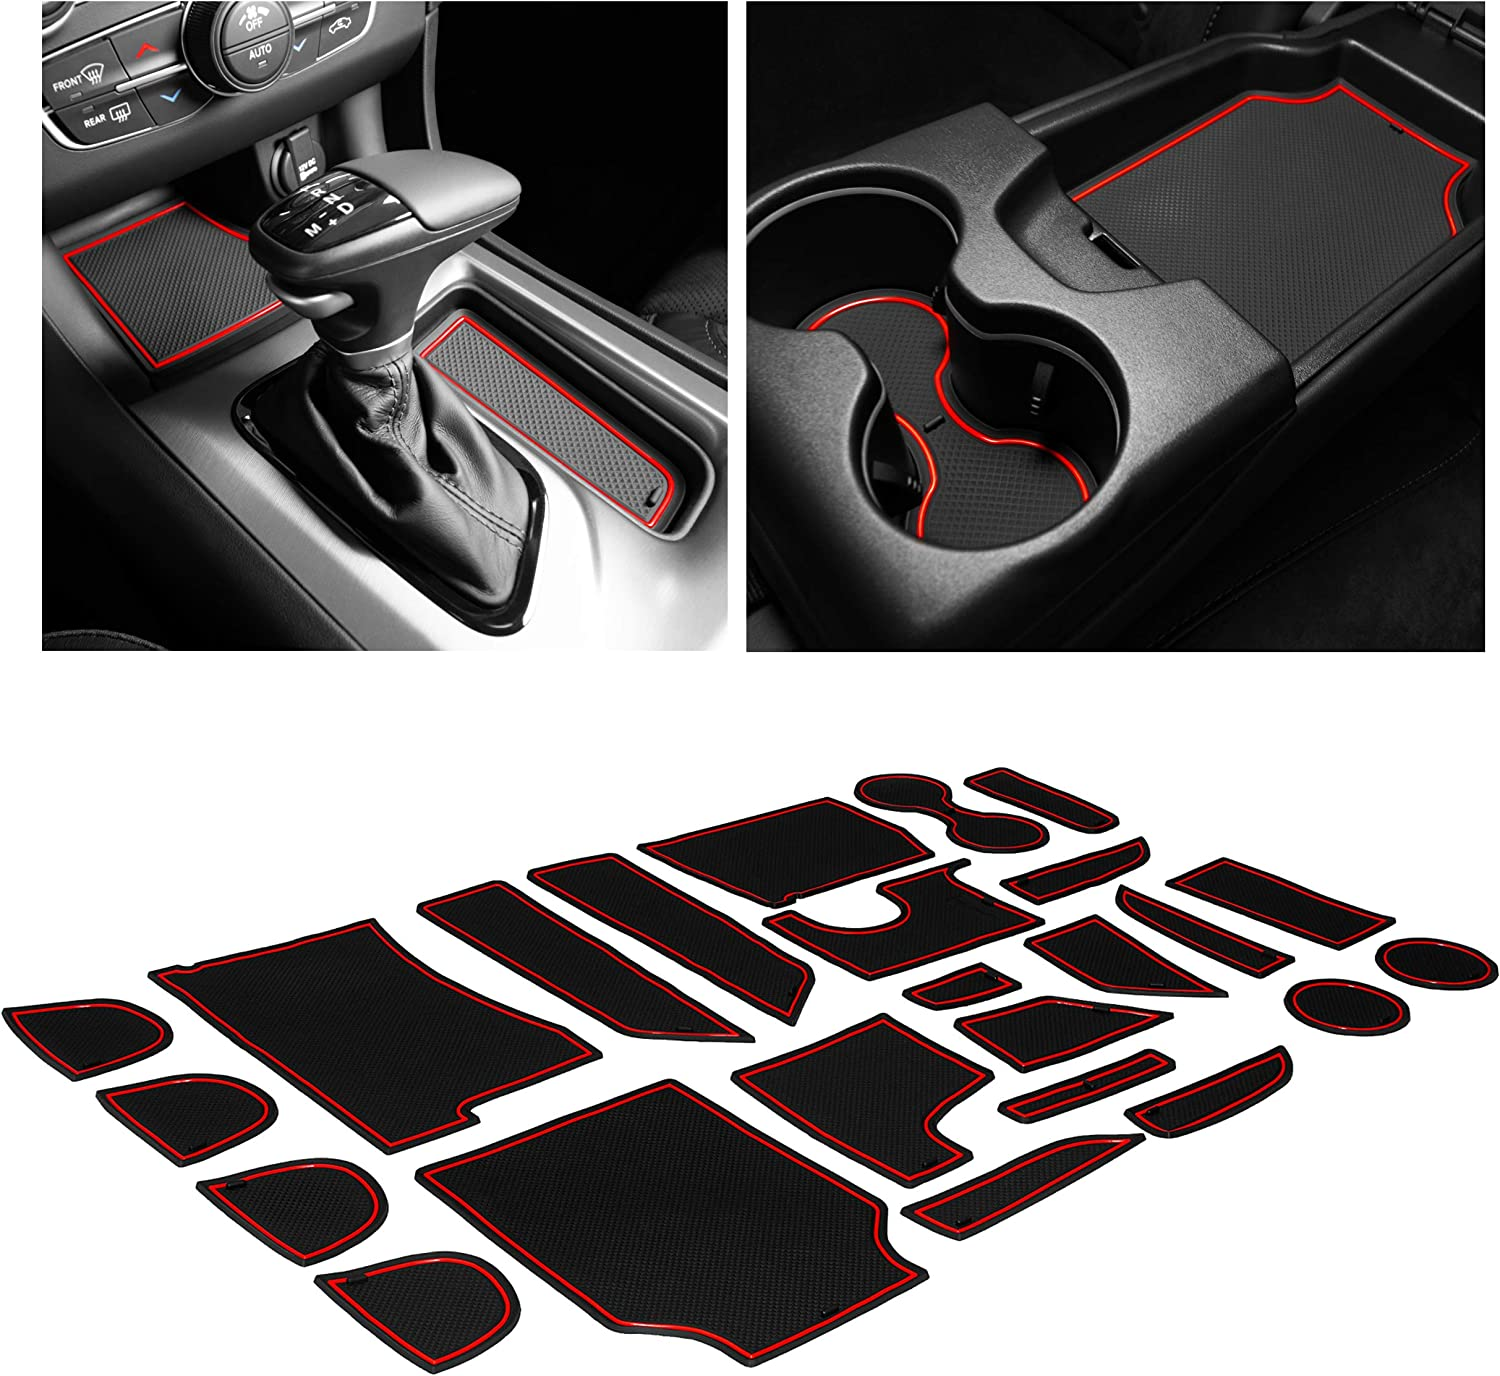 CupHolderHero fits Ford Fusion Accessories 2017-2020 Premium Custom Interior Non-Slip Anti Dust Cup Holder Inserts Door Pocket Liners 22-pc Set Blue Trim Center Console Liner Mats